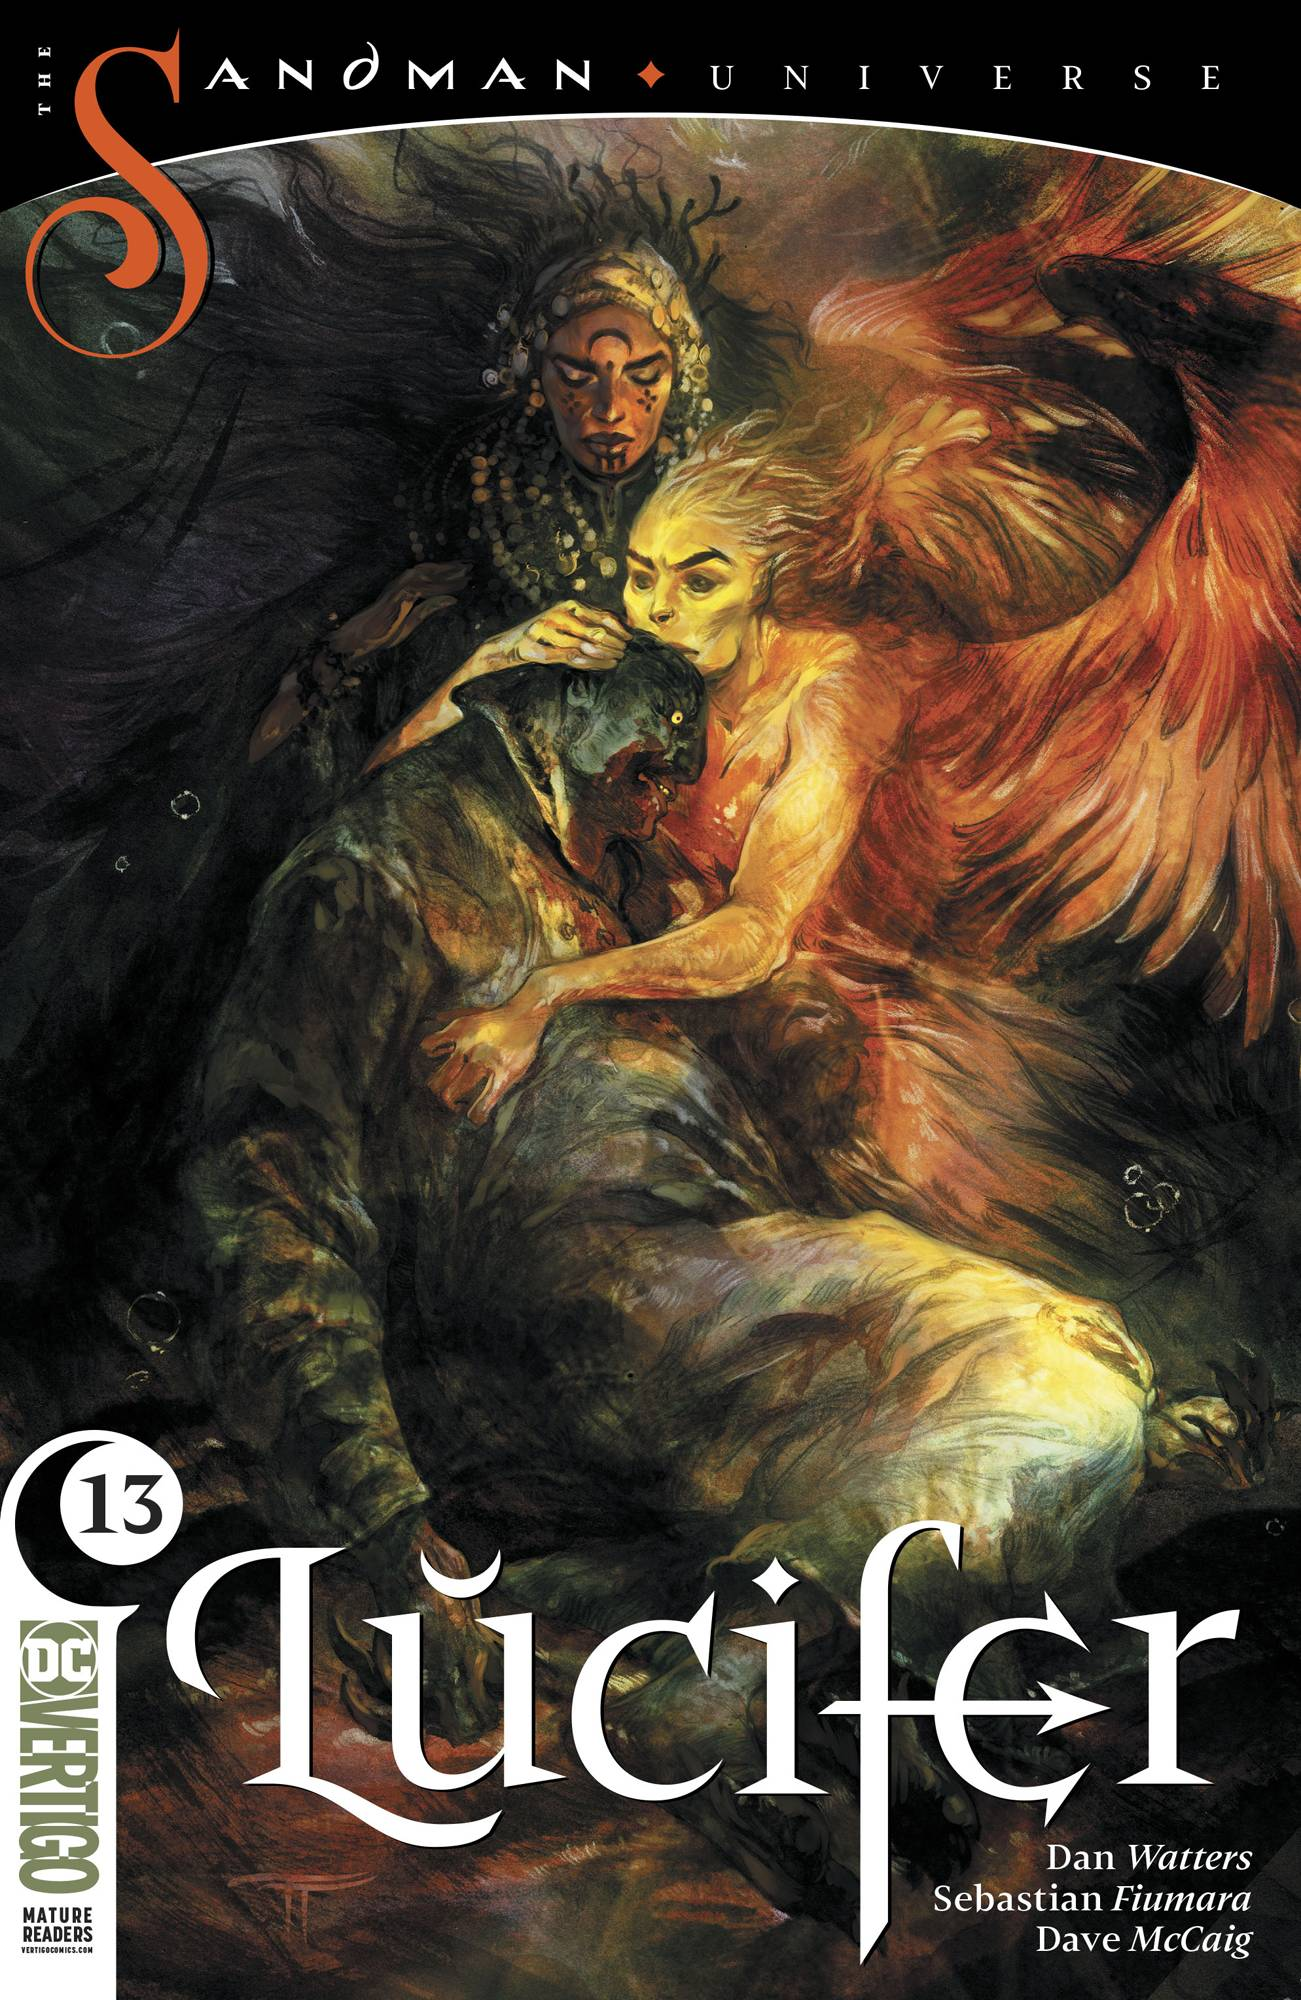 LUCIFER #13 (MR)